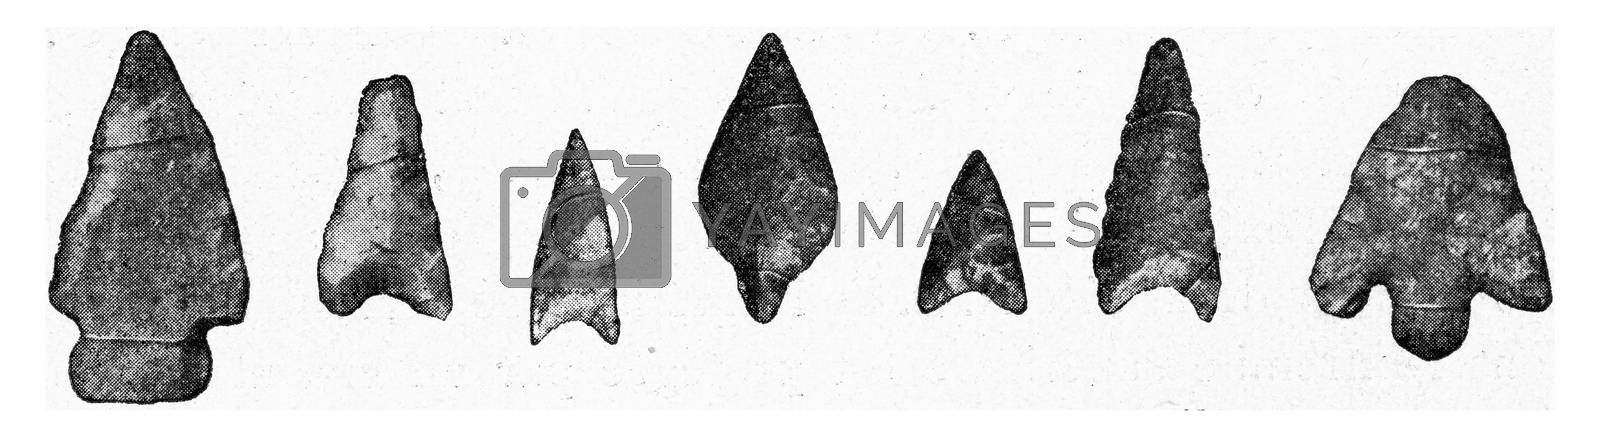 German arrowheads in flint, vintage engraved illustration. From the Universe and Humanity, 1910.